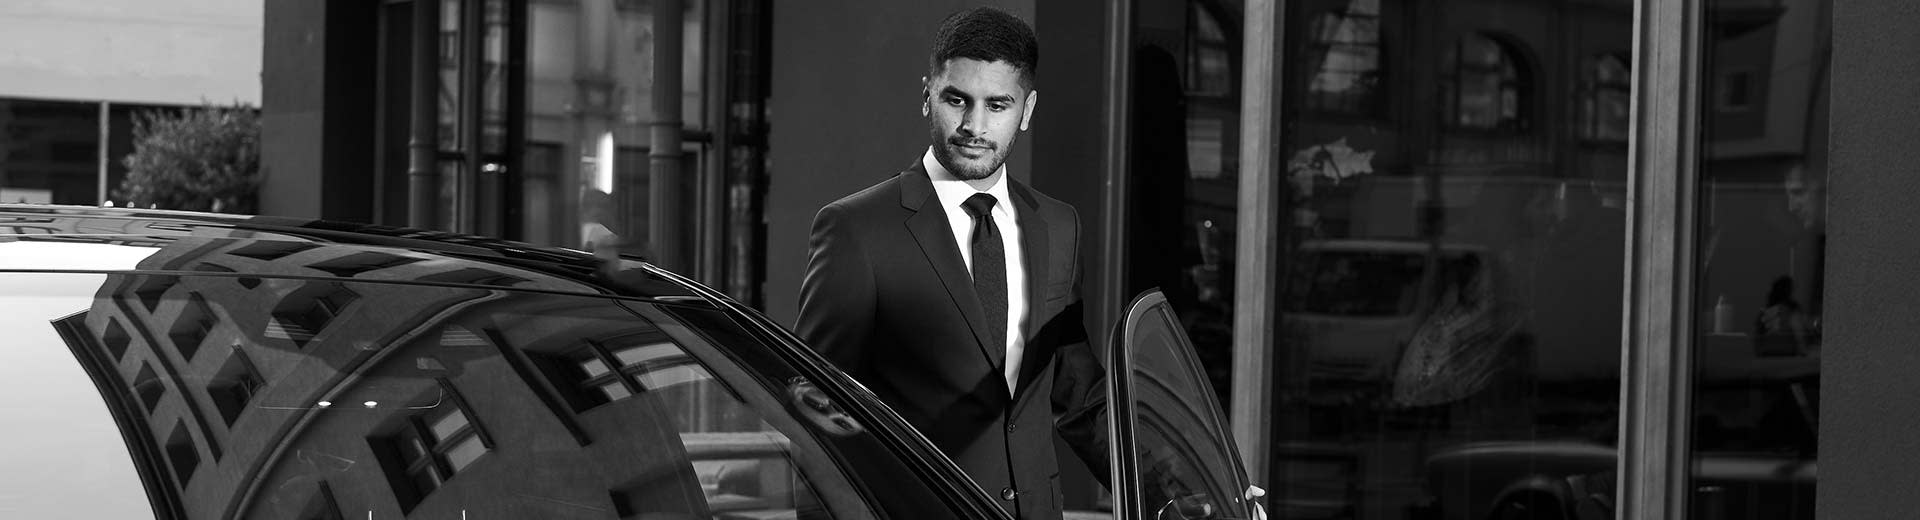 Umair, a real Blacklane chauffeur in Stuttgart, stands in a suit and tie behind his black car, ready to drive his guest.